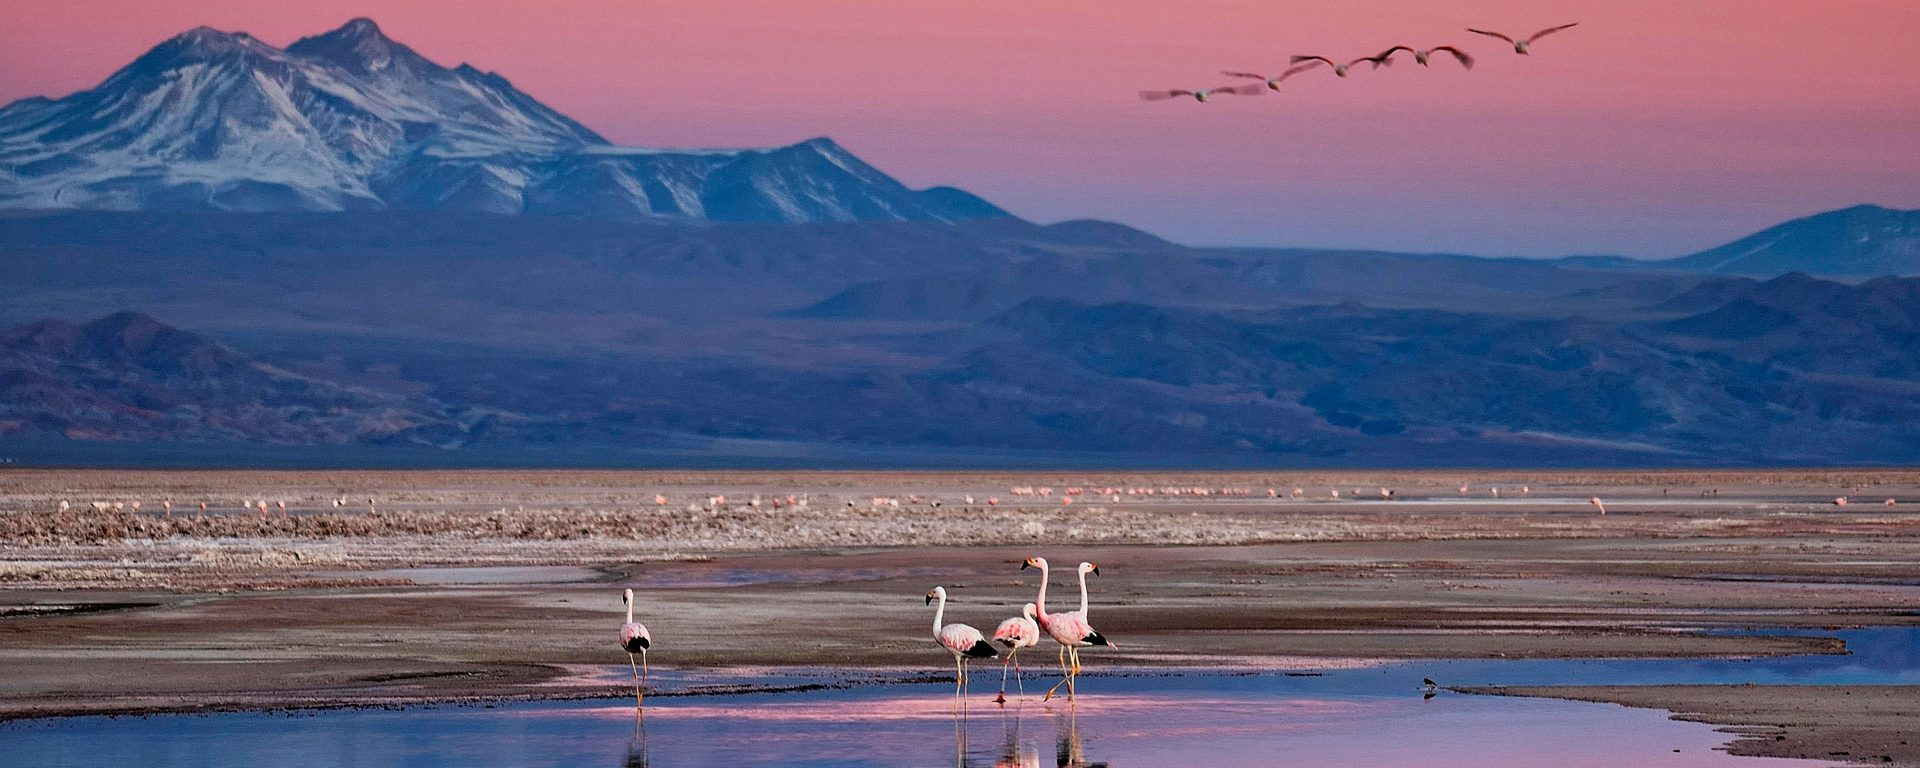 Mountain and lake with flamingos at sunset, Chile